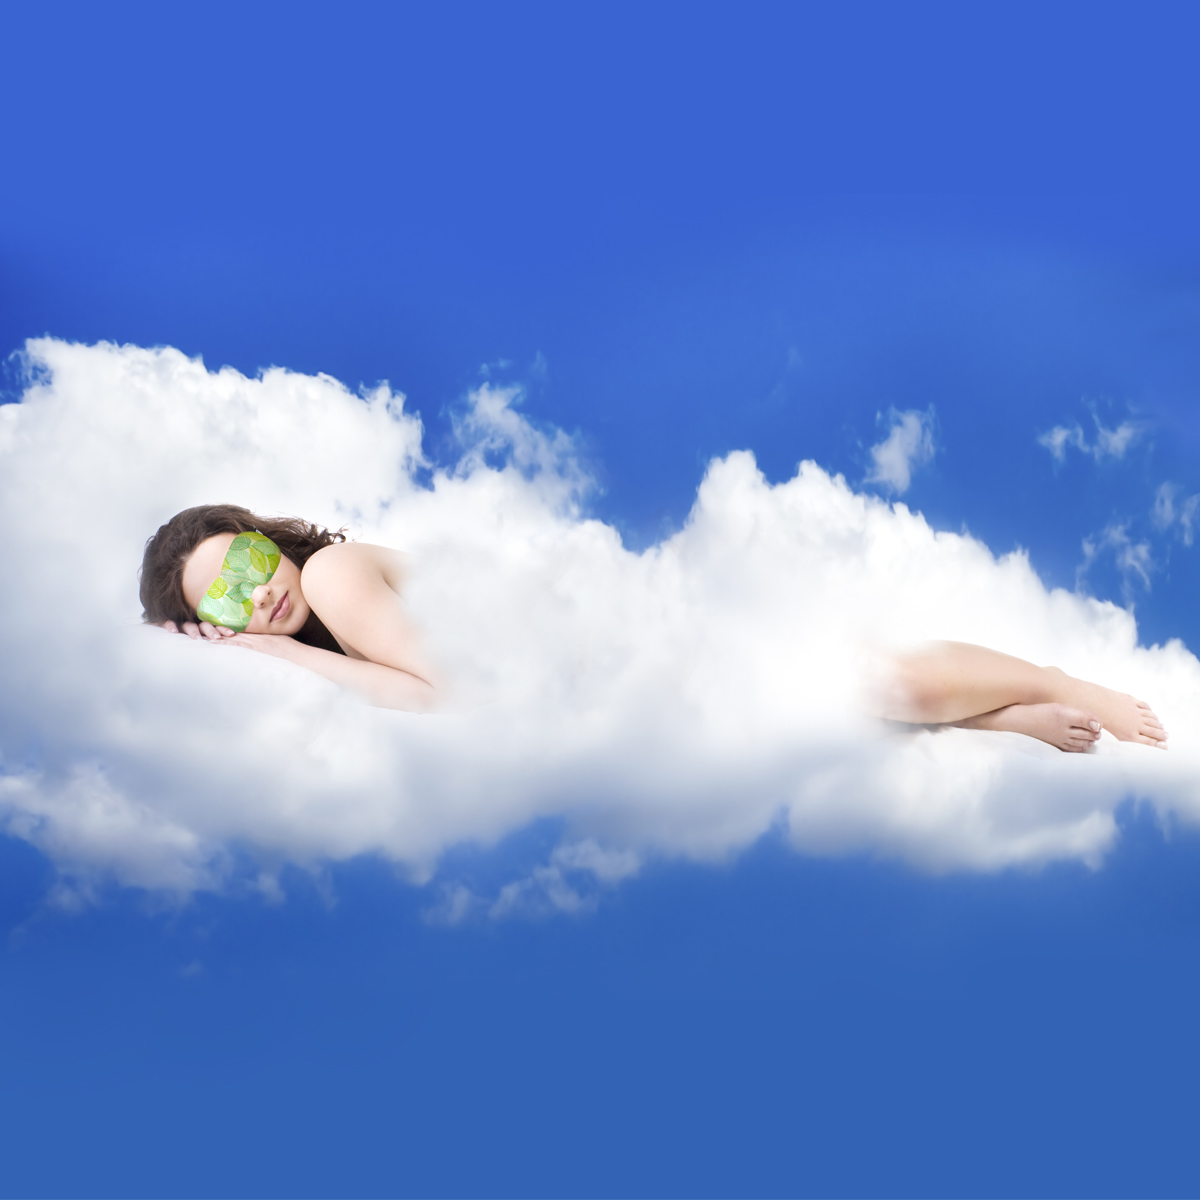 4 - EM3513 - Emerald Forest - EM with a lady in the Cloud.jpg